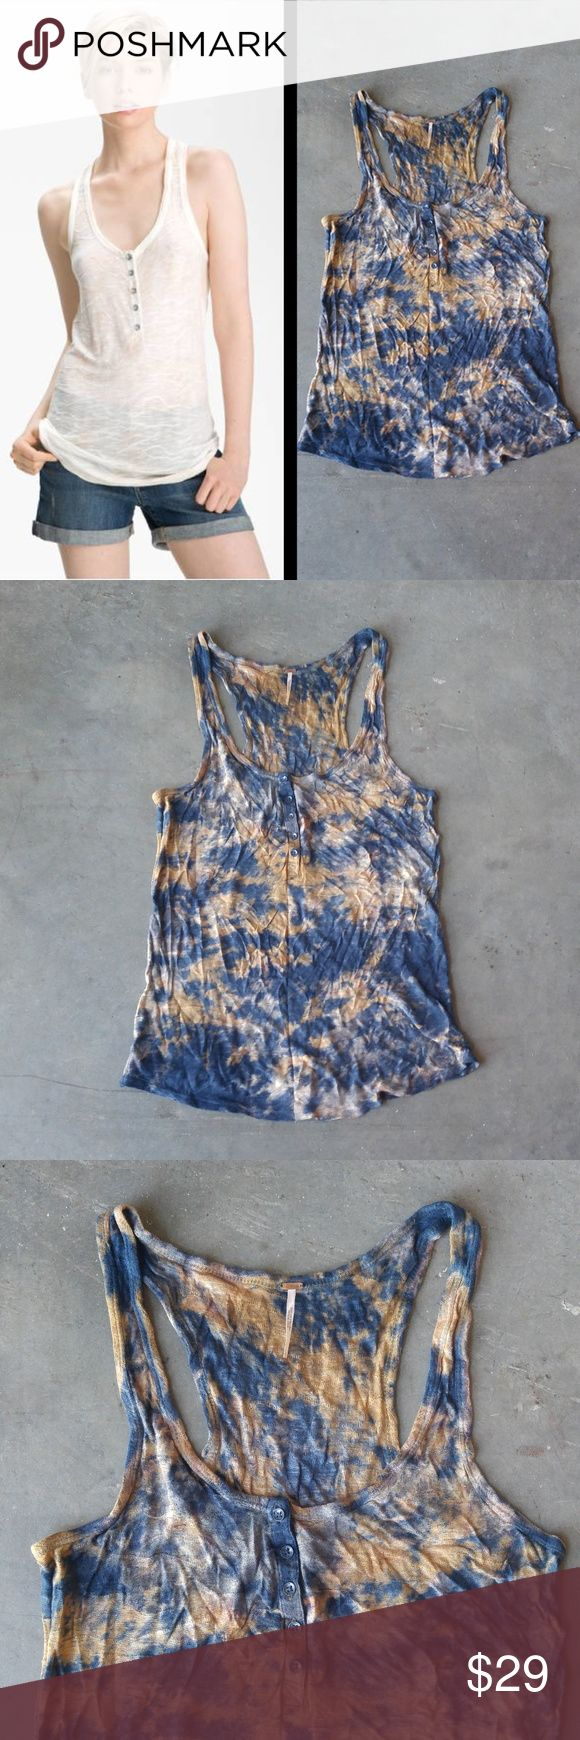 Free People Ocean Breeze Tank in Tie Dye Free People tank top, size large, in excellent condition! Henley style with front buttons and longer length. Blue and brown tie dye. A great casual tank for warmer months! Cover photo from Nordstrom website. No trades. No modeling. Make a reasonable offer. Thanks! Free People Tops Tank Tops